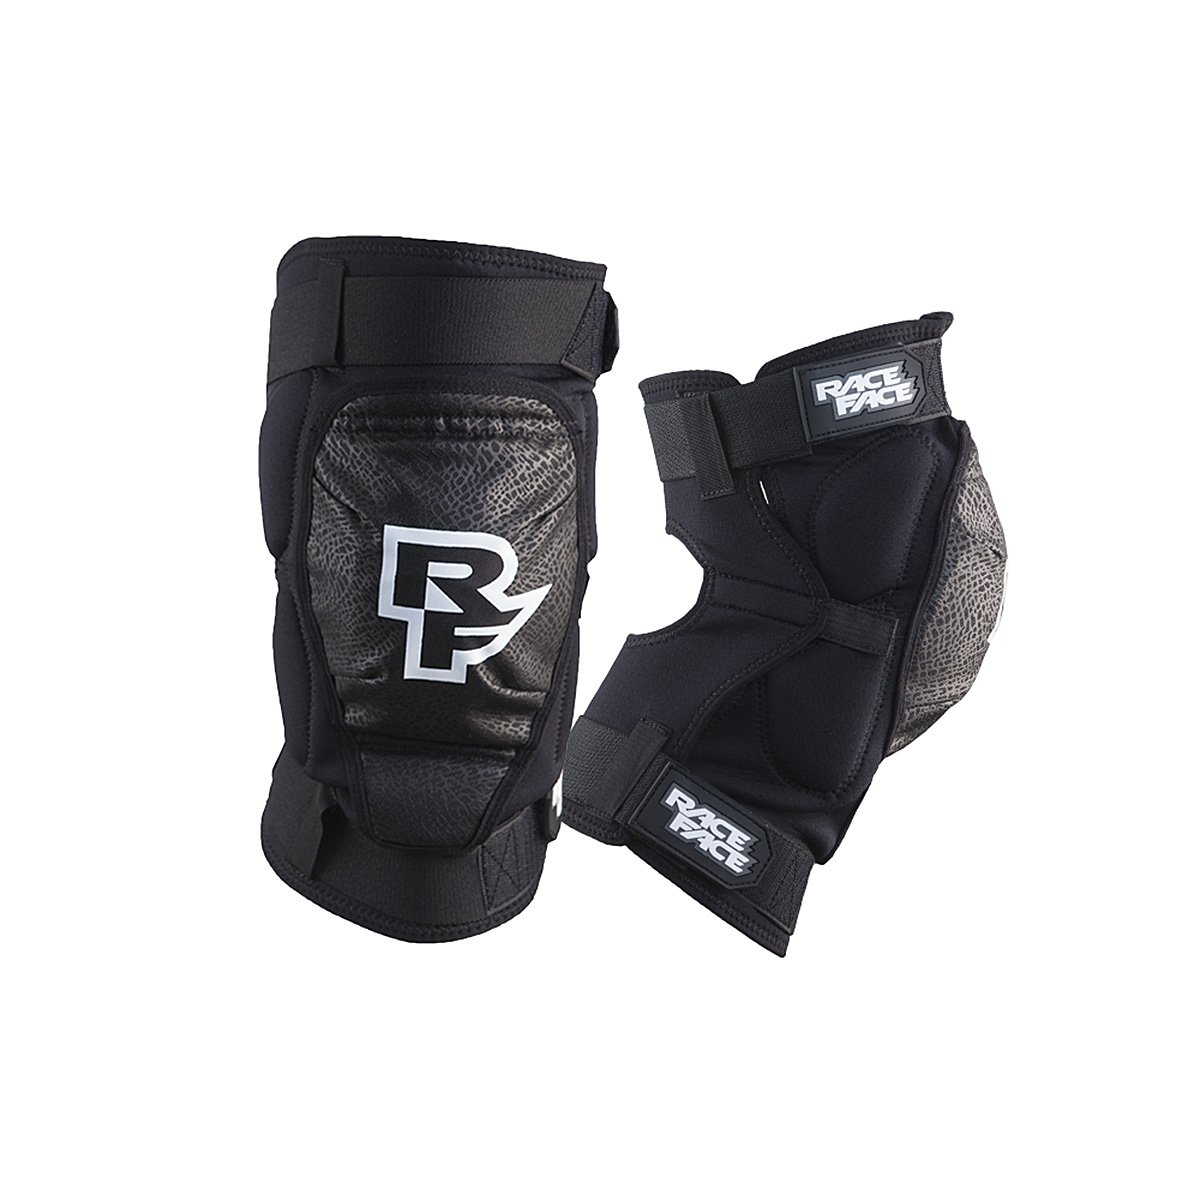 RaceFace Dig Knee Guard, Black, Small